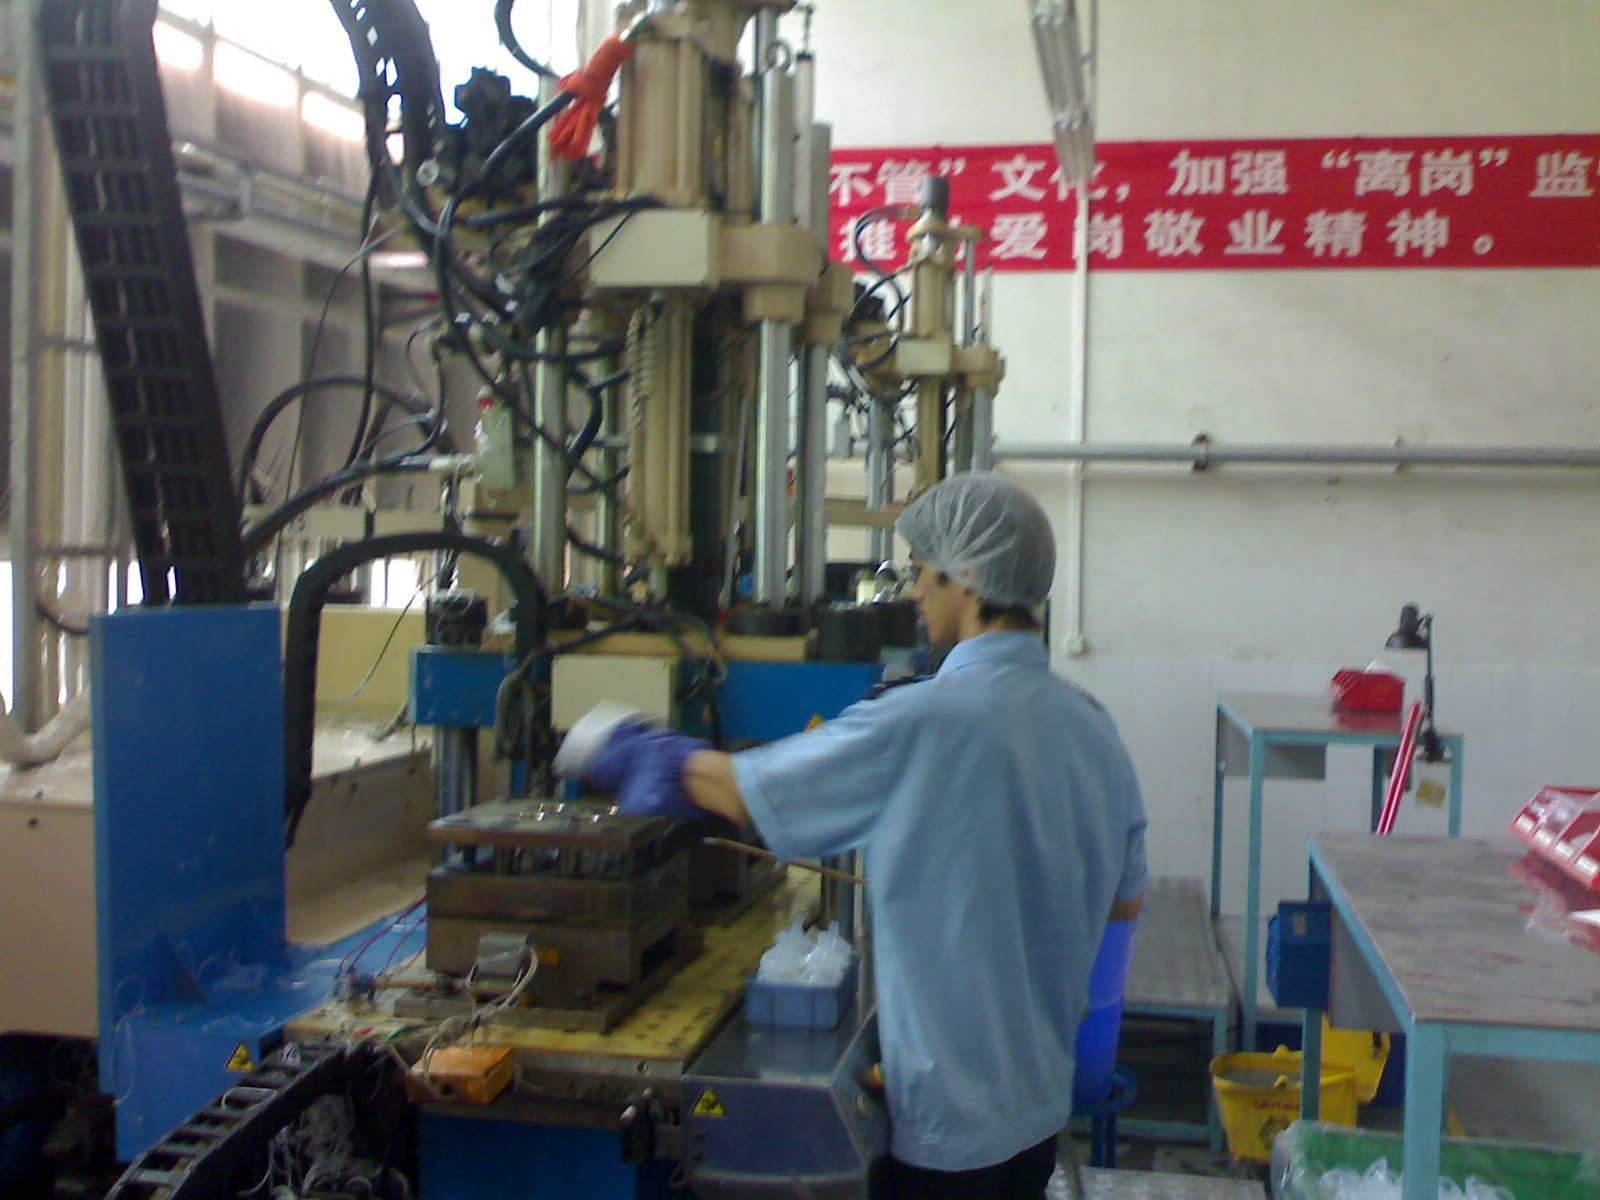 LSR silicone injection molding production team